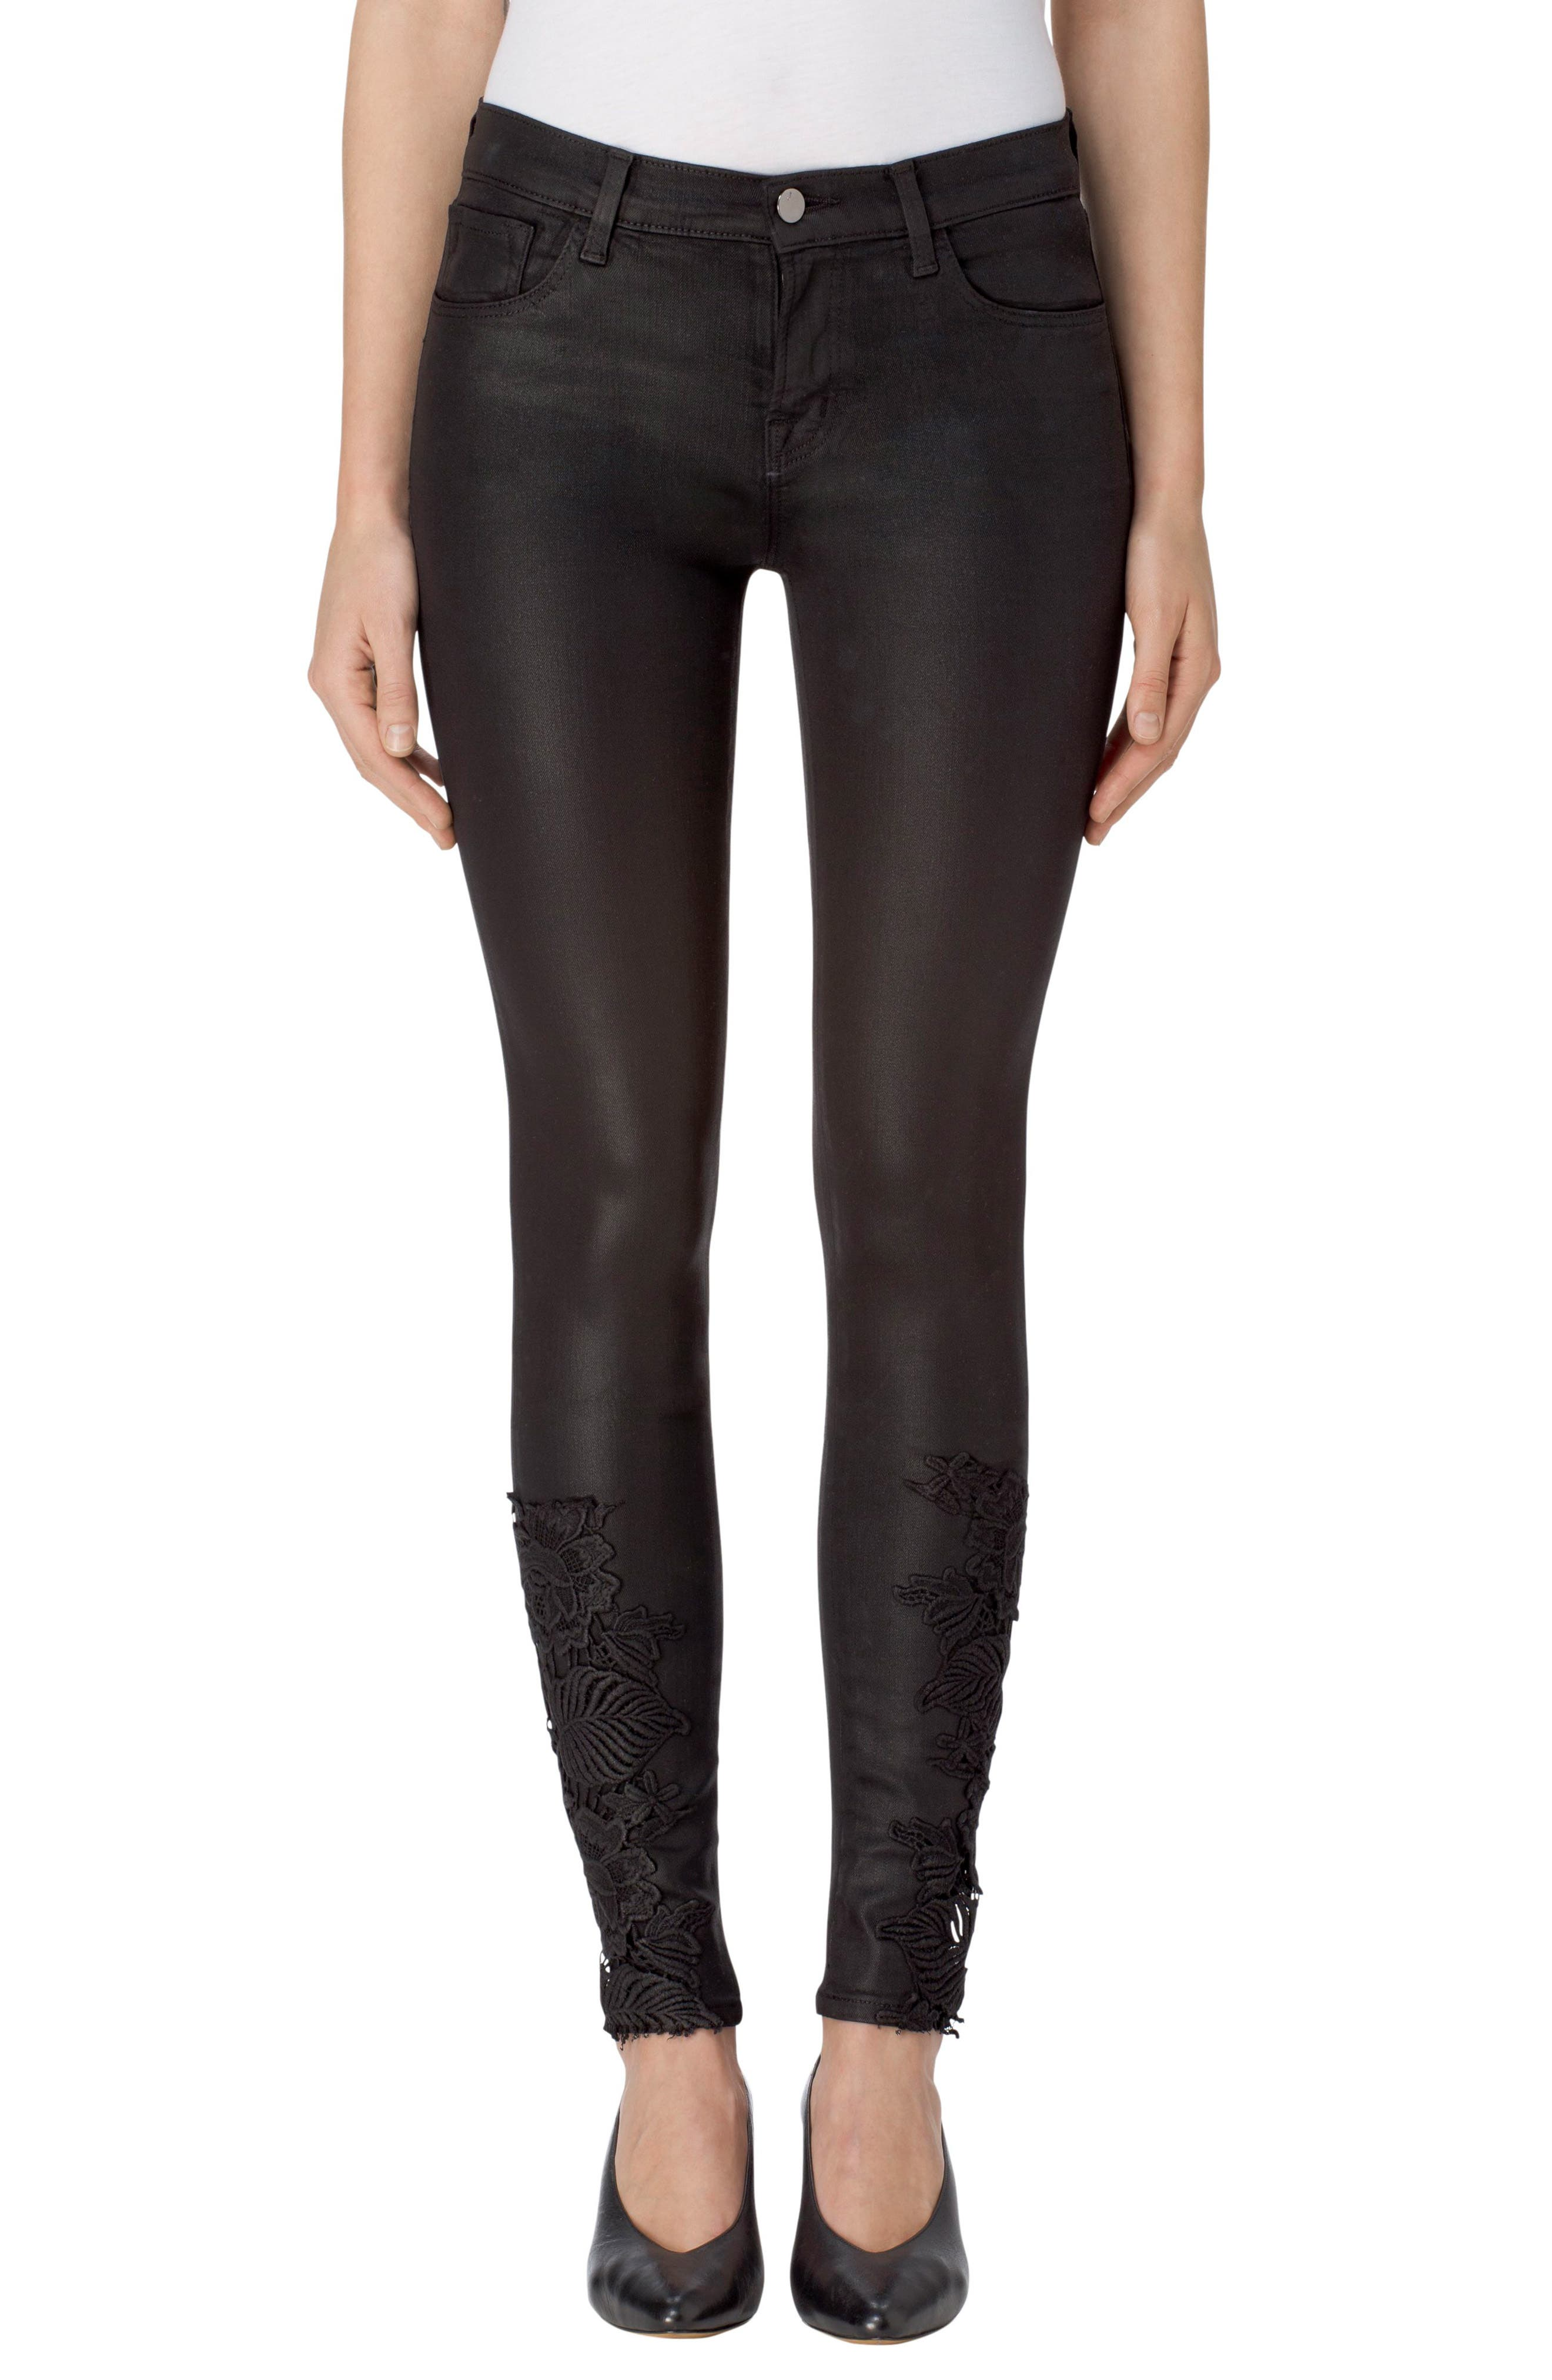 620 Mid Rise Super Skinny Jeans,                         Main,                         color, Coated Black Lace